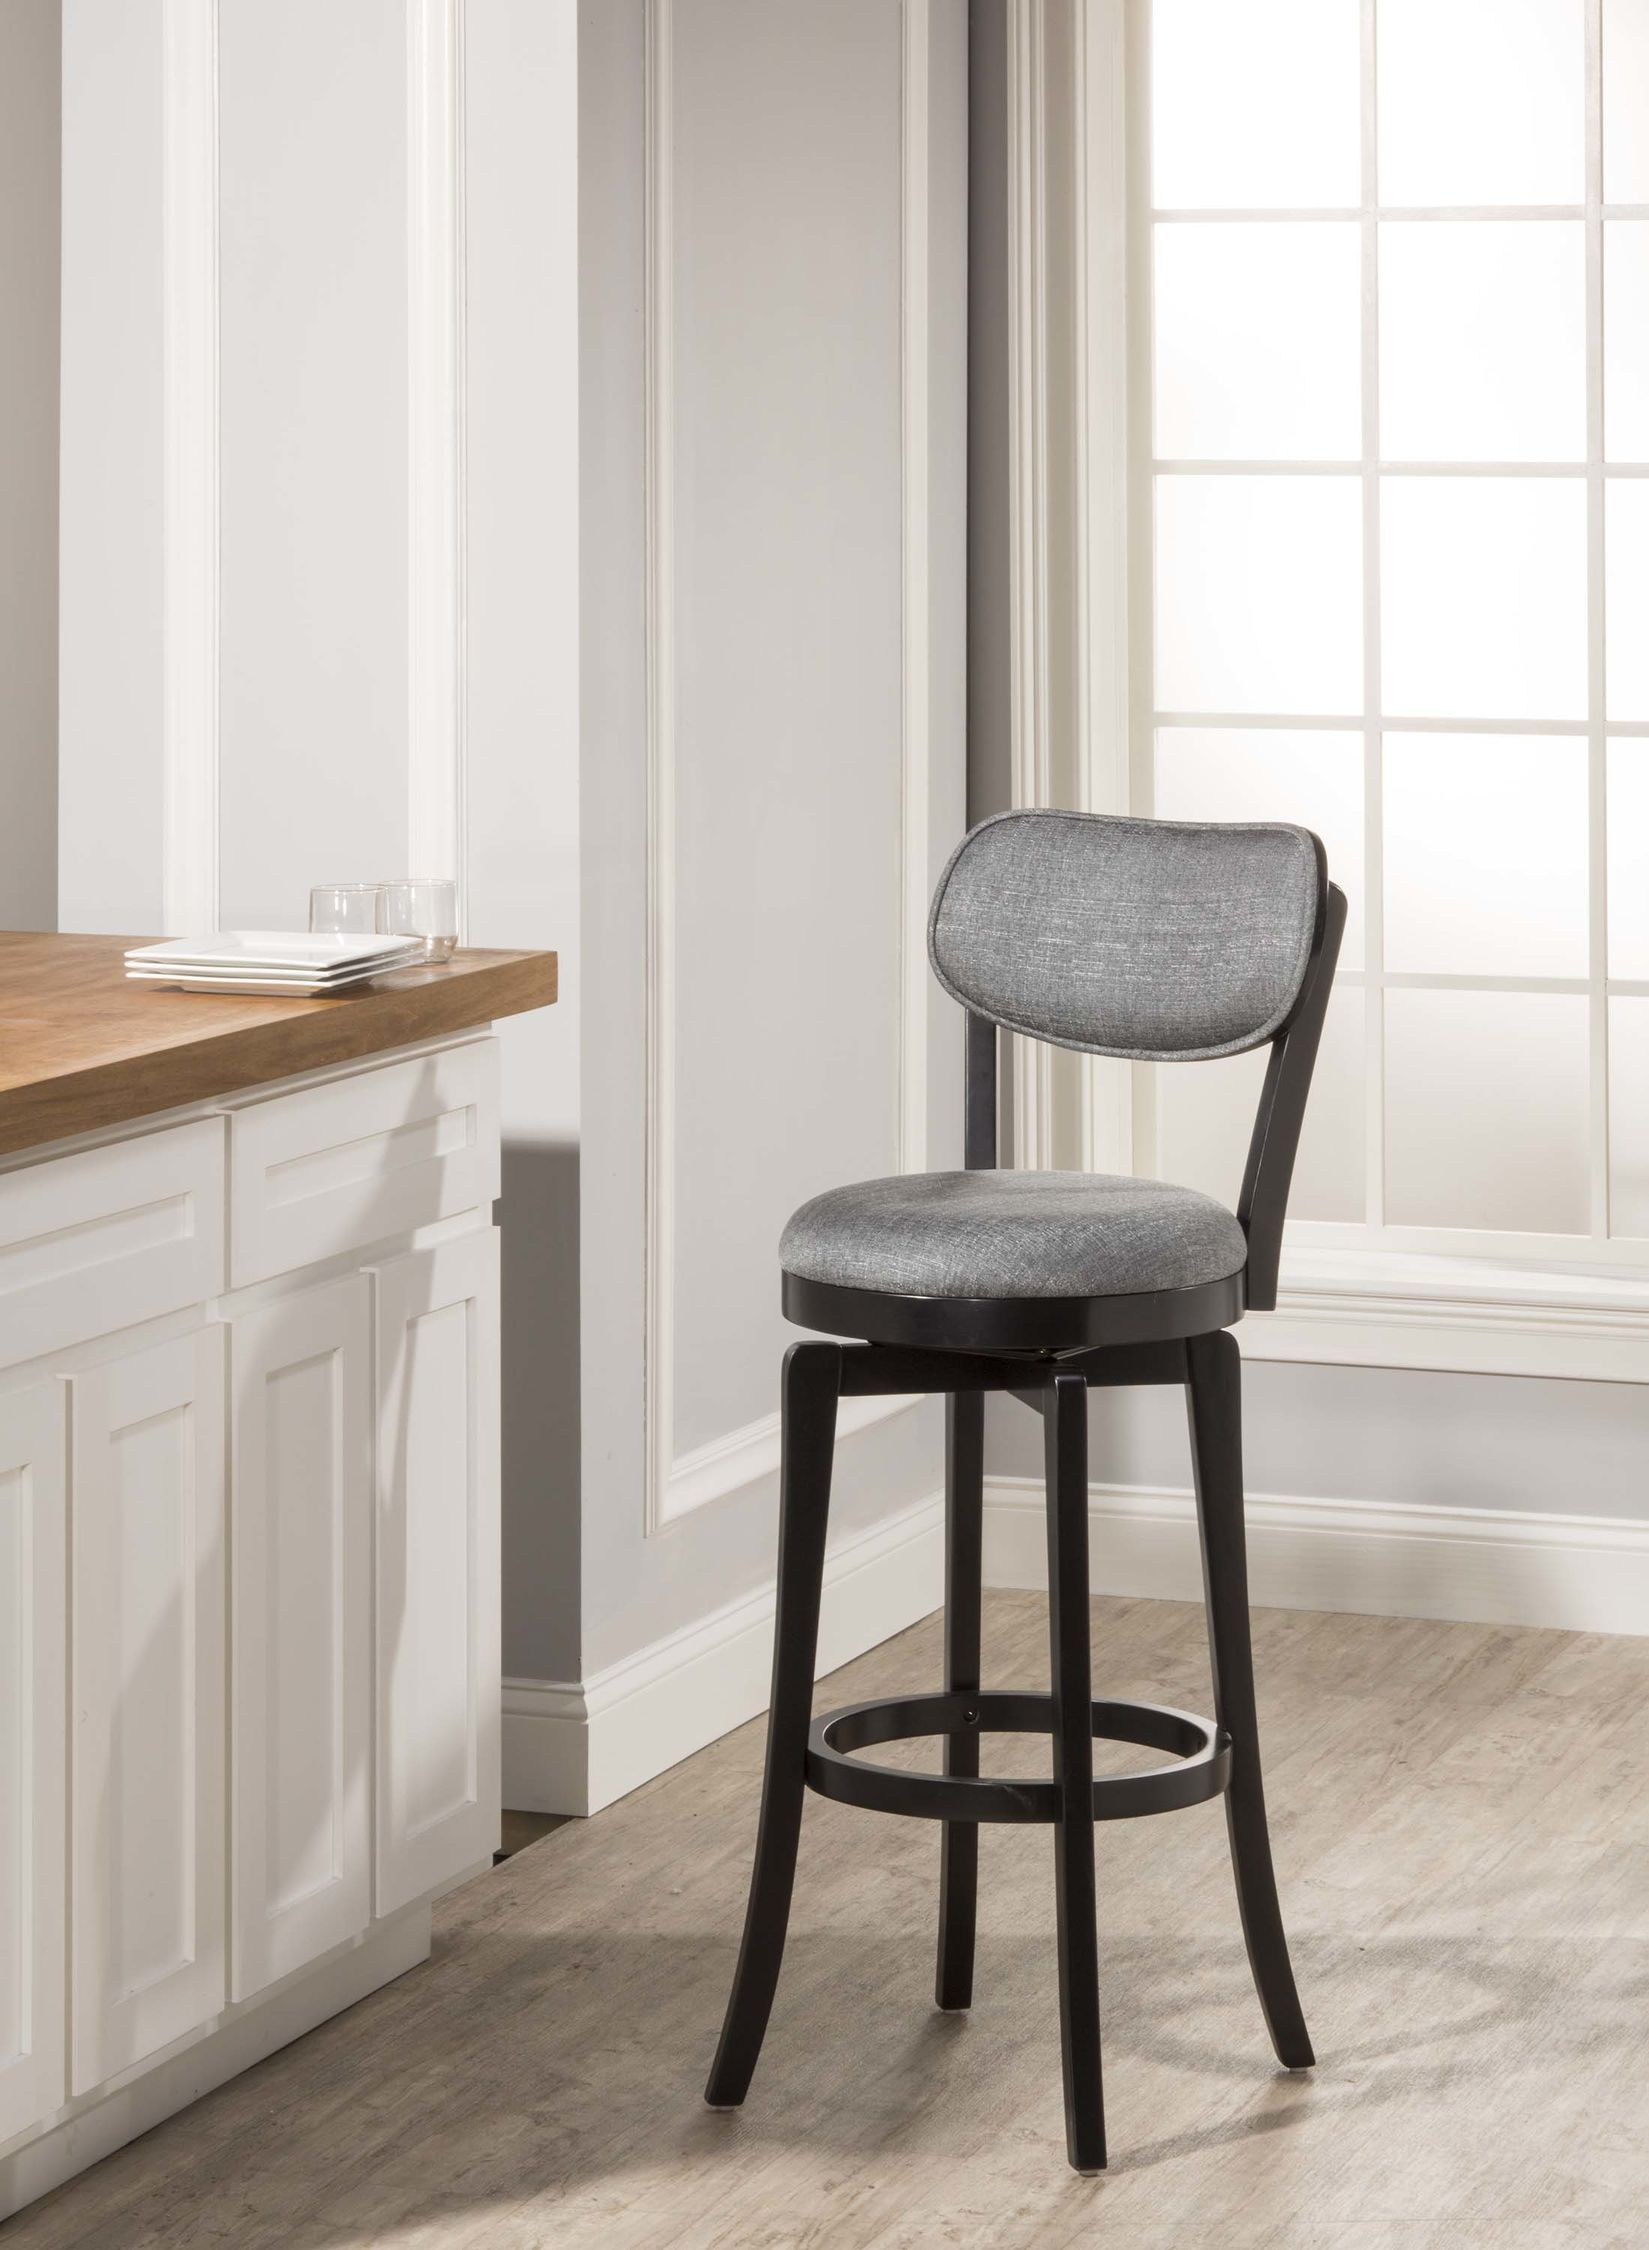 Vintage Bar Stool Ideas For Your Home Or Restaurant Design Www Barstoolsfurniture Com Barchair Barst Bar Stools For Sale Bar Stools Industrial Bar Stools